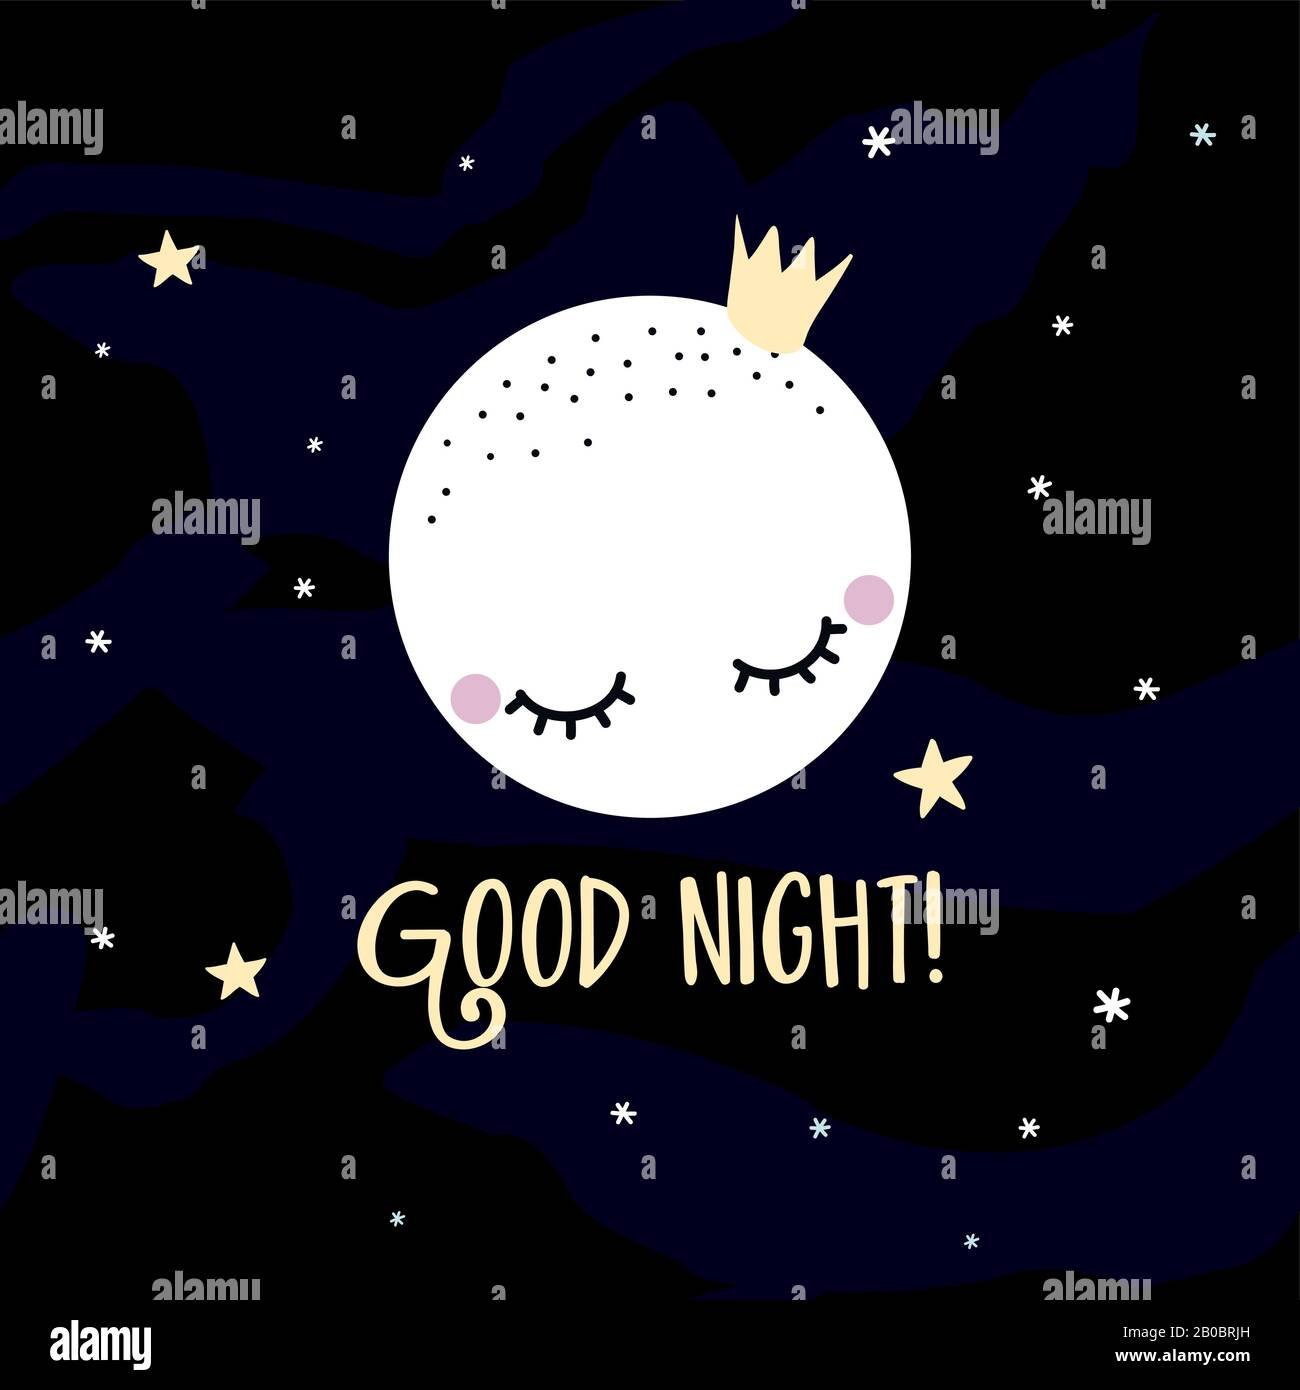 Good Night High Resolution Stock Photography And Images Alamy